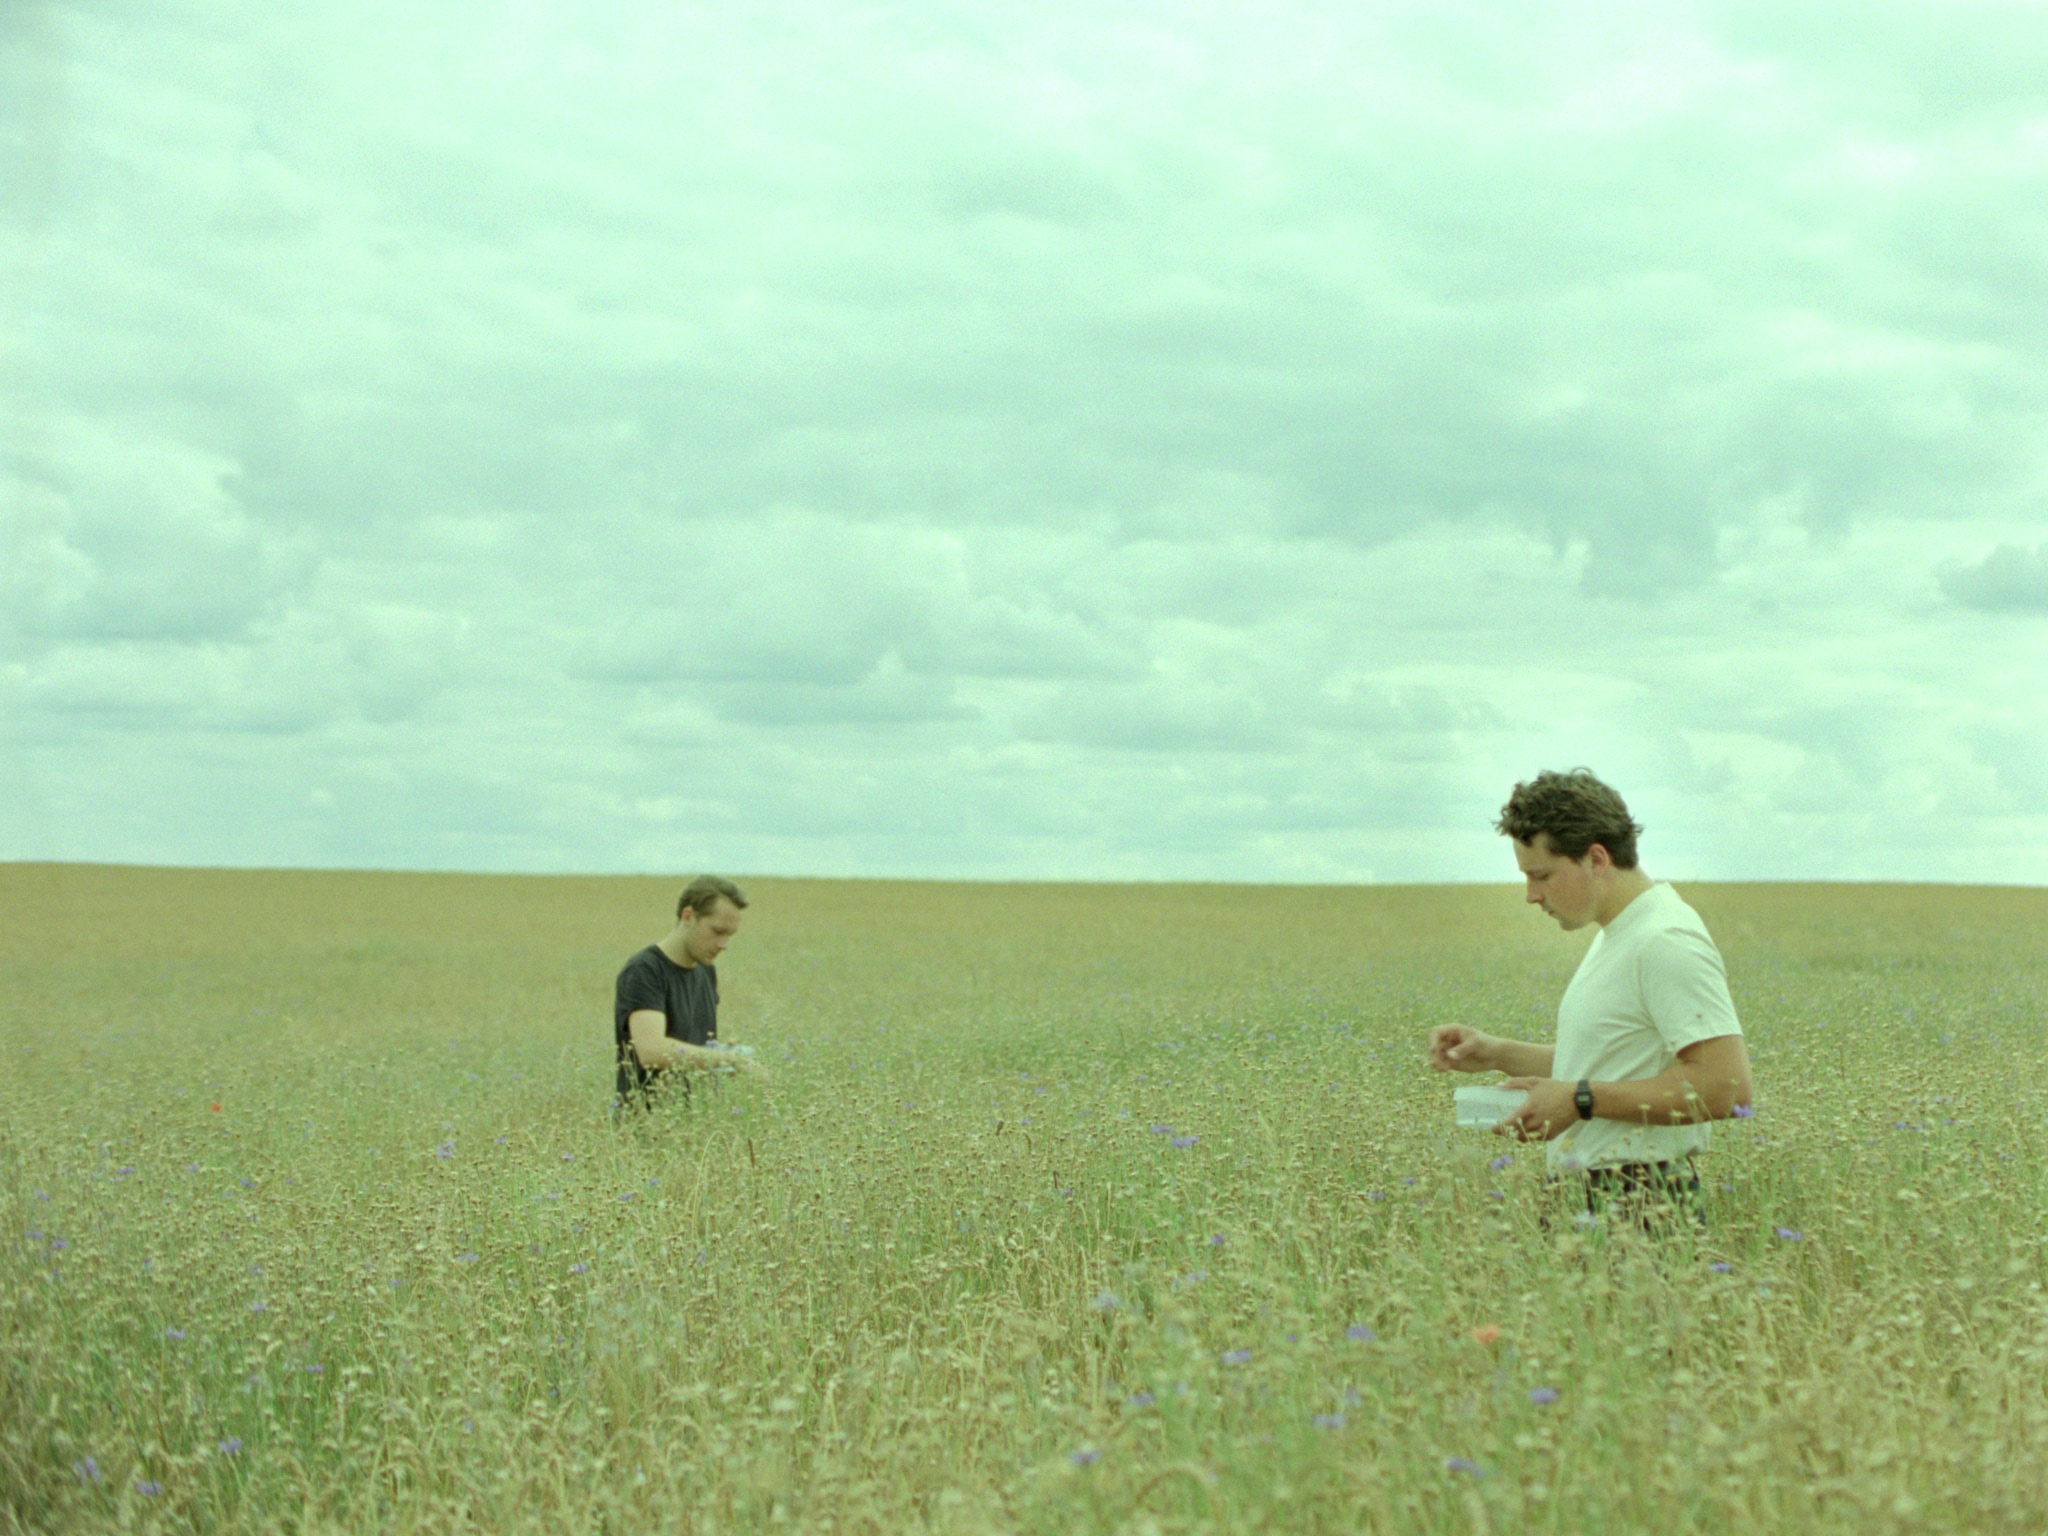 Two young men standing in a yellow wheat field foraging small purple flowers.